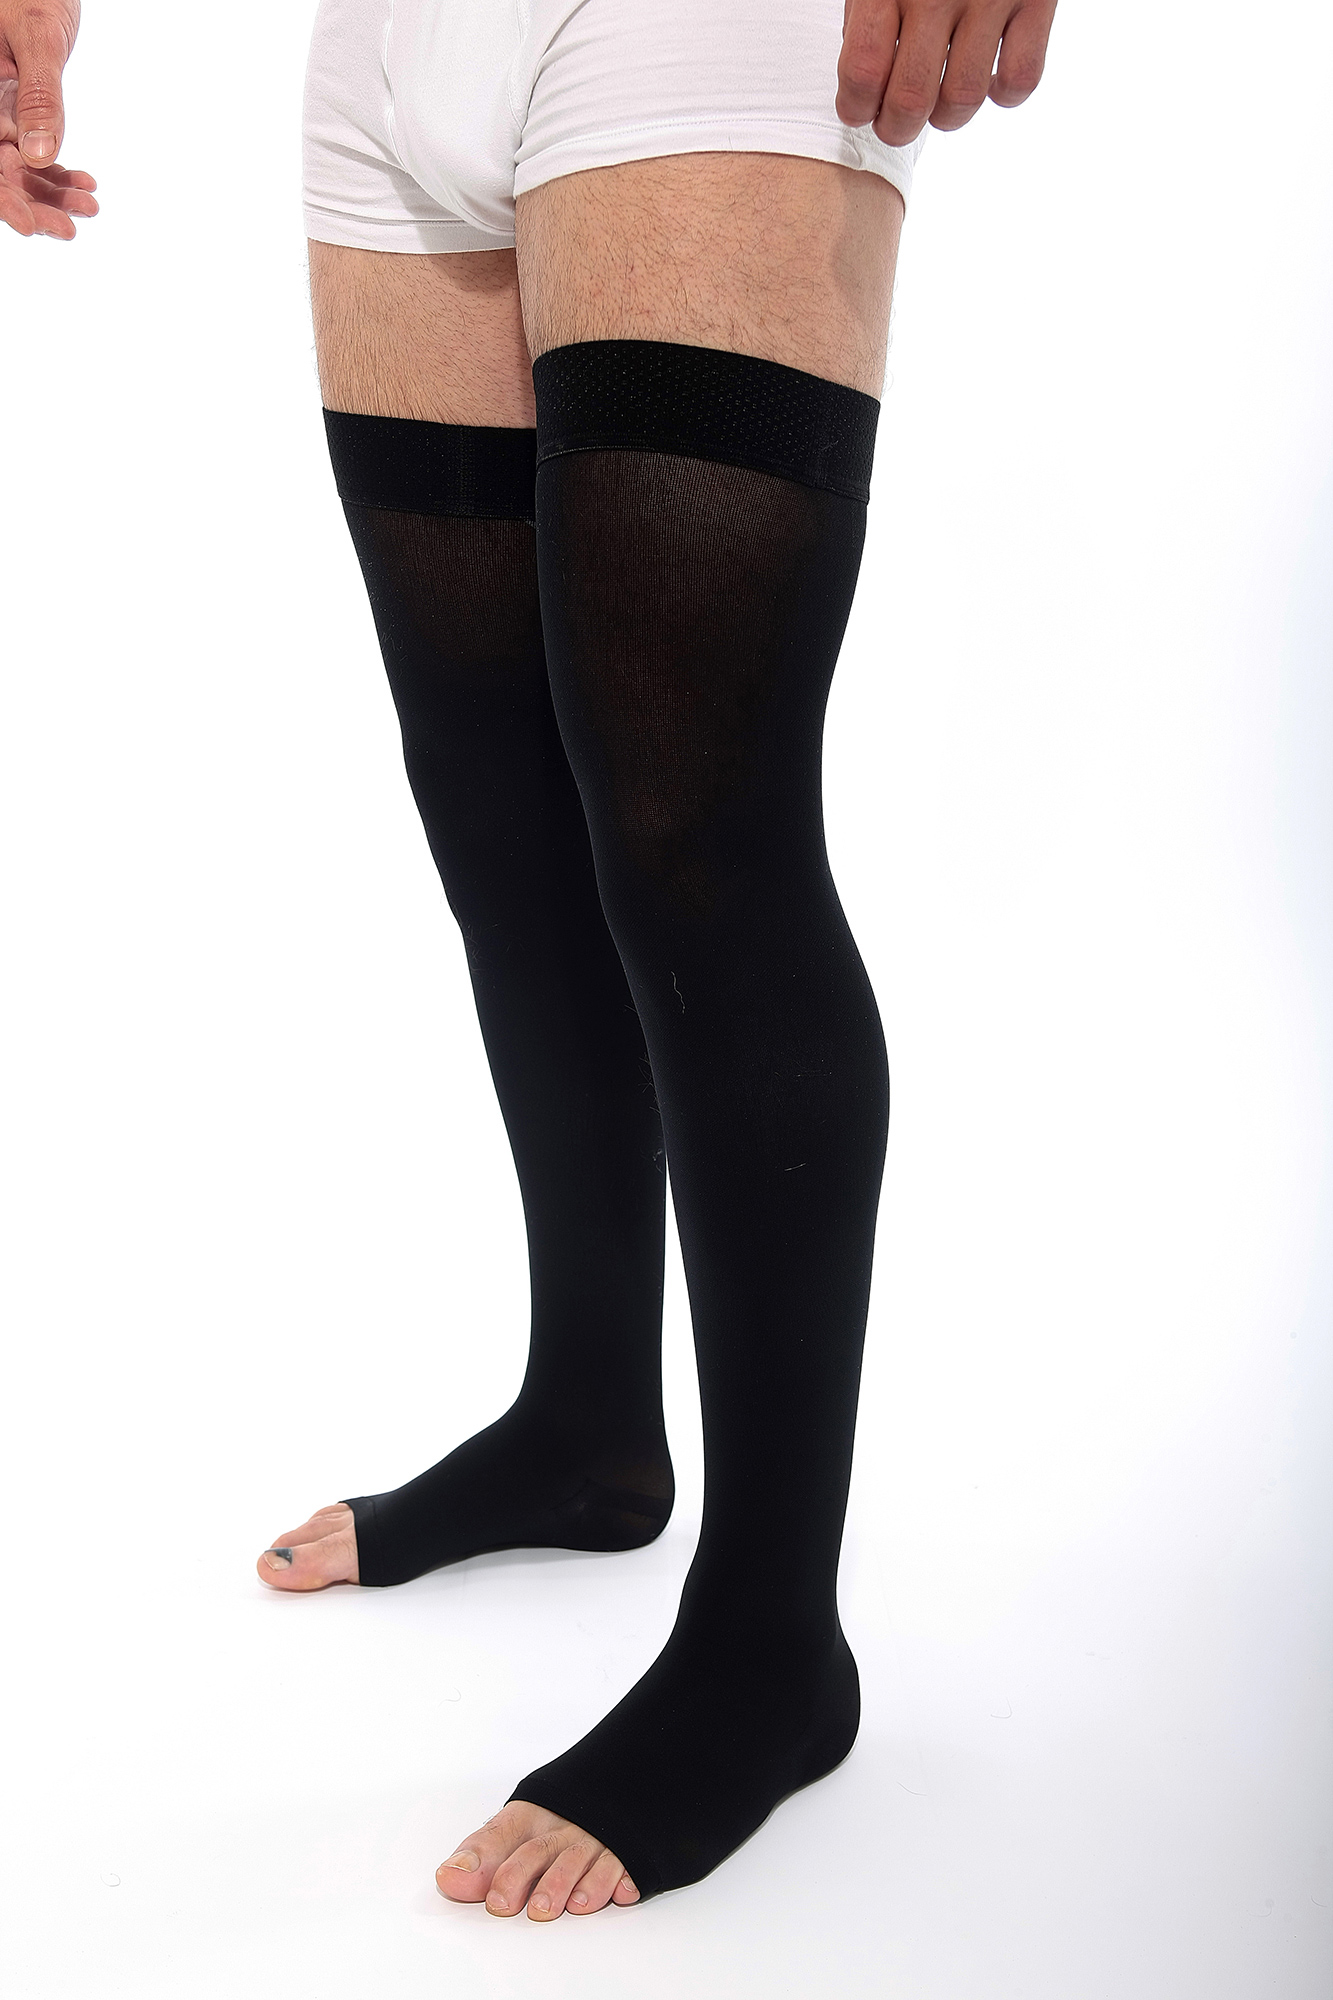 VENOSAN® 4001 Thigh with Self Supporting Plain Top (AGH) 18-21 mmHg Black Extra Large Long Closed Toe